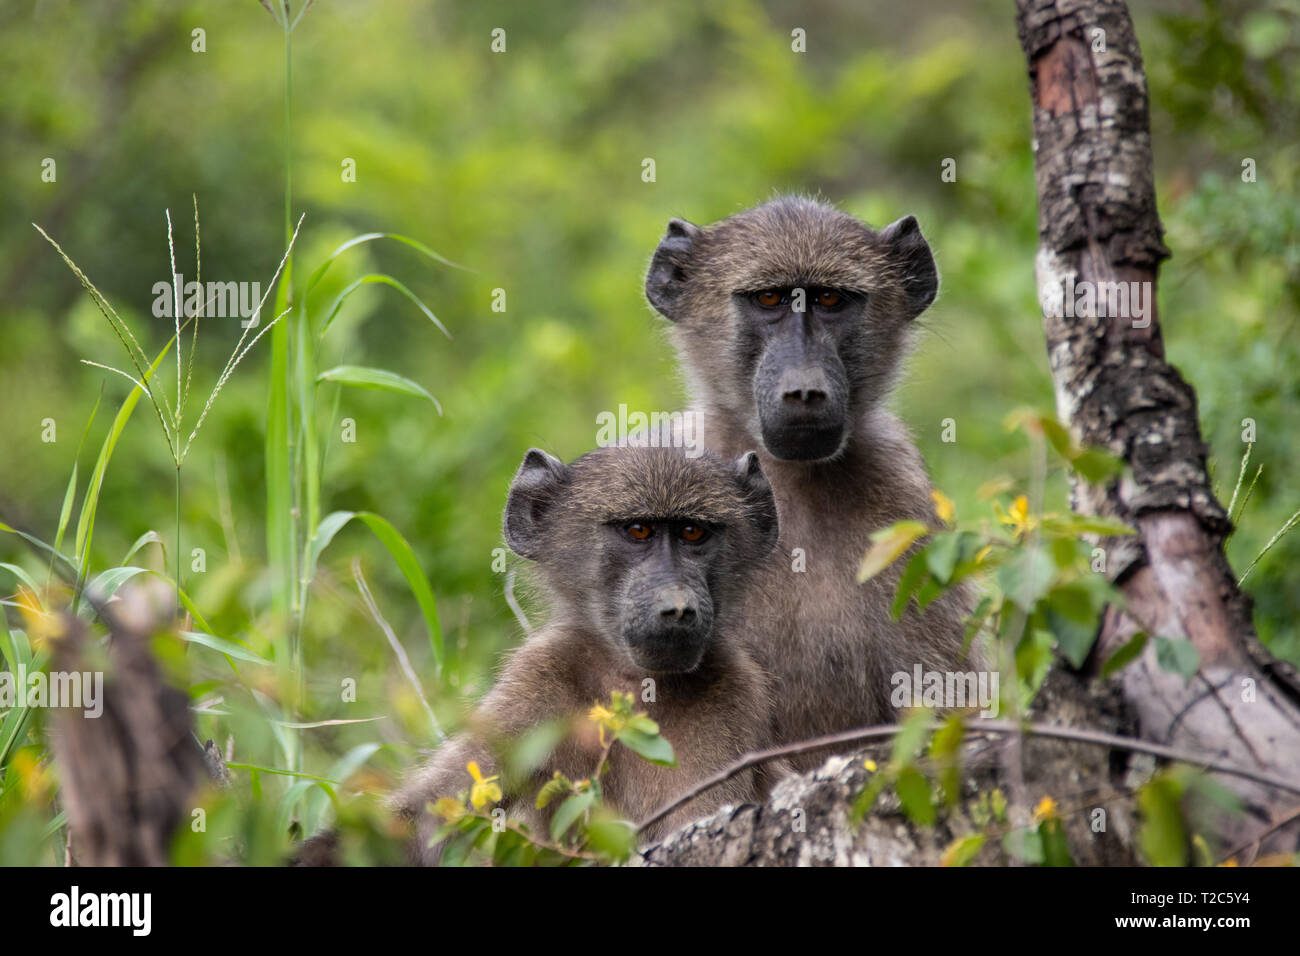 Portrait of Two cute Baboons looking at the camera - Stock Image